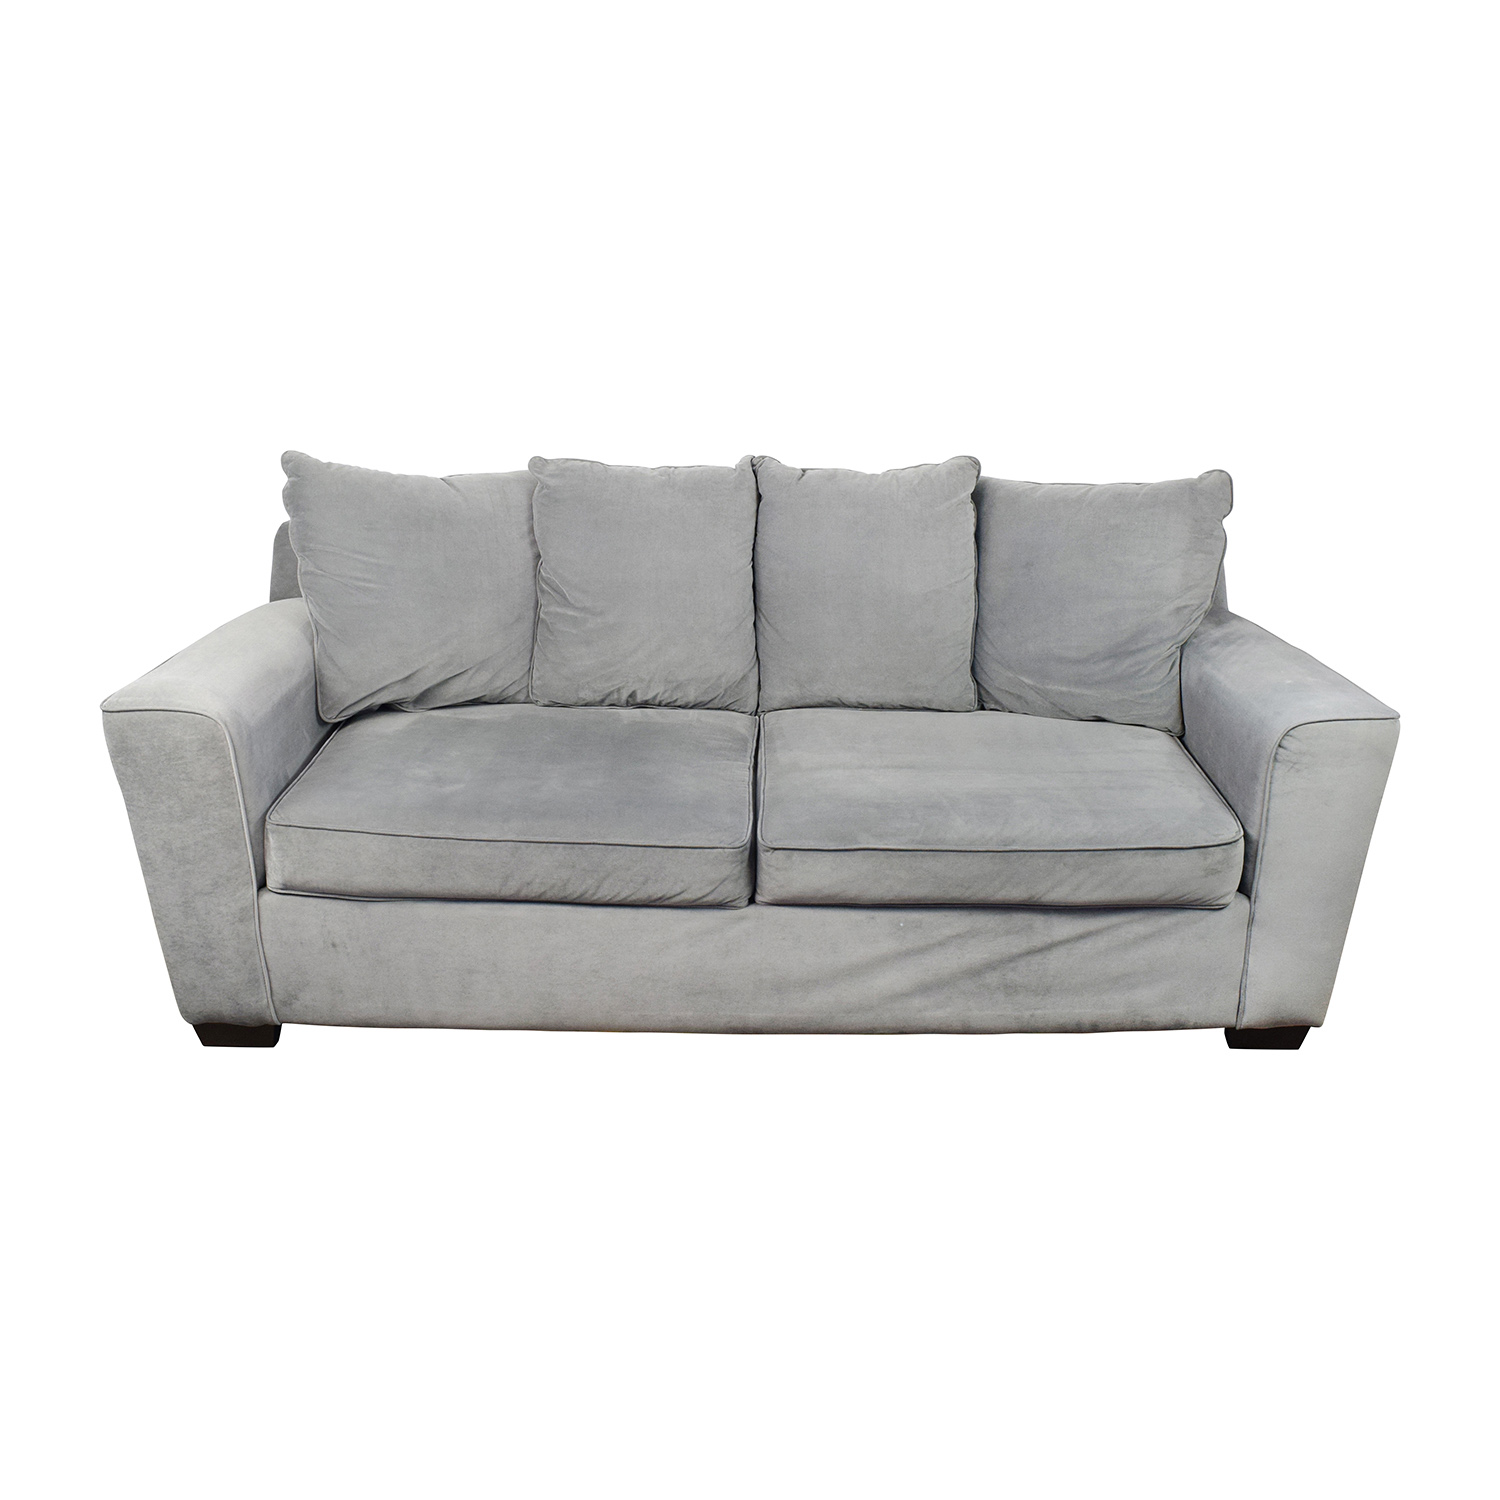 Jennifer Convertibles Jennifer Convertibles Gray Sofa coupon